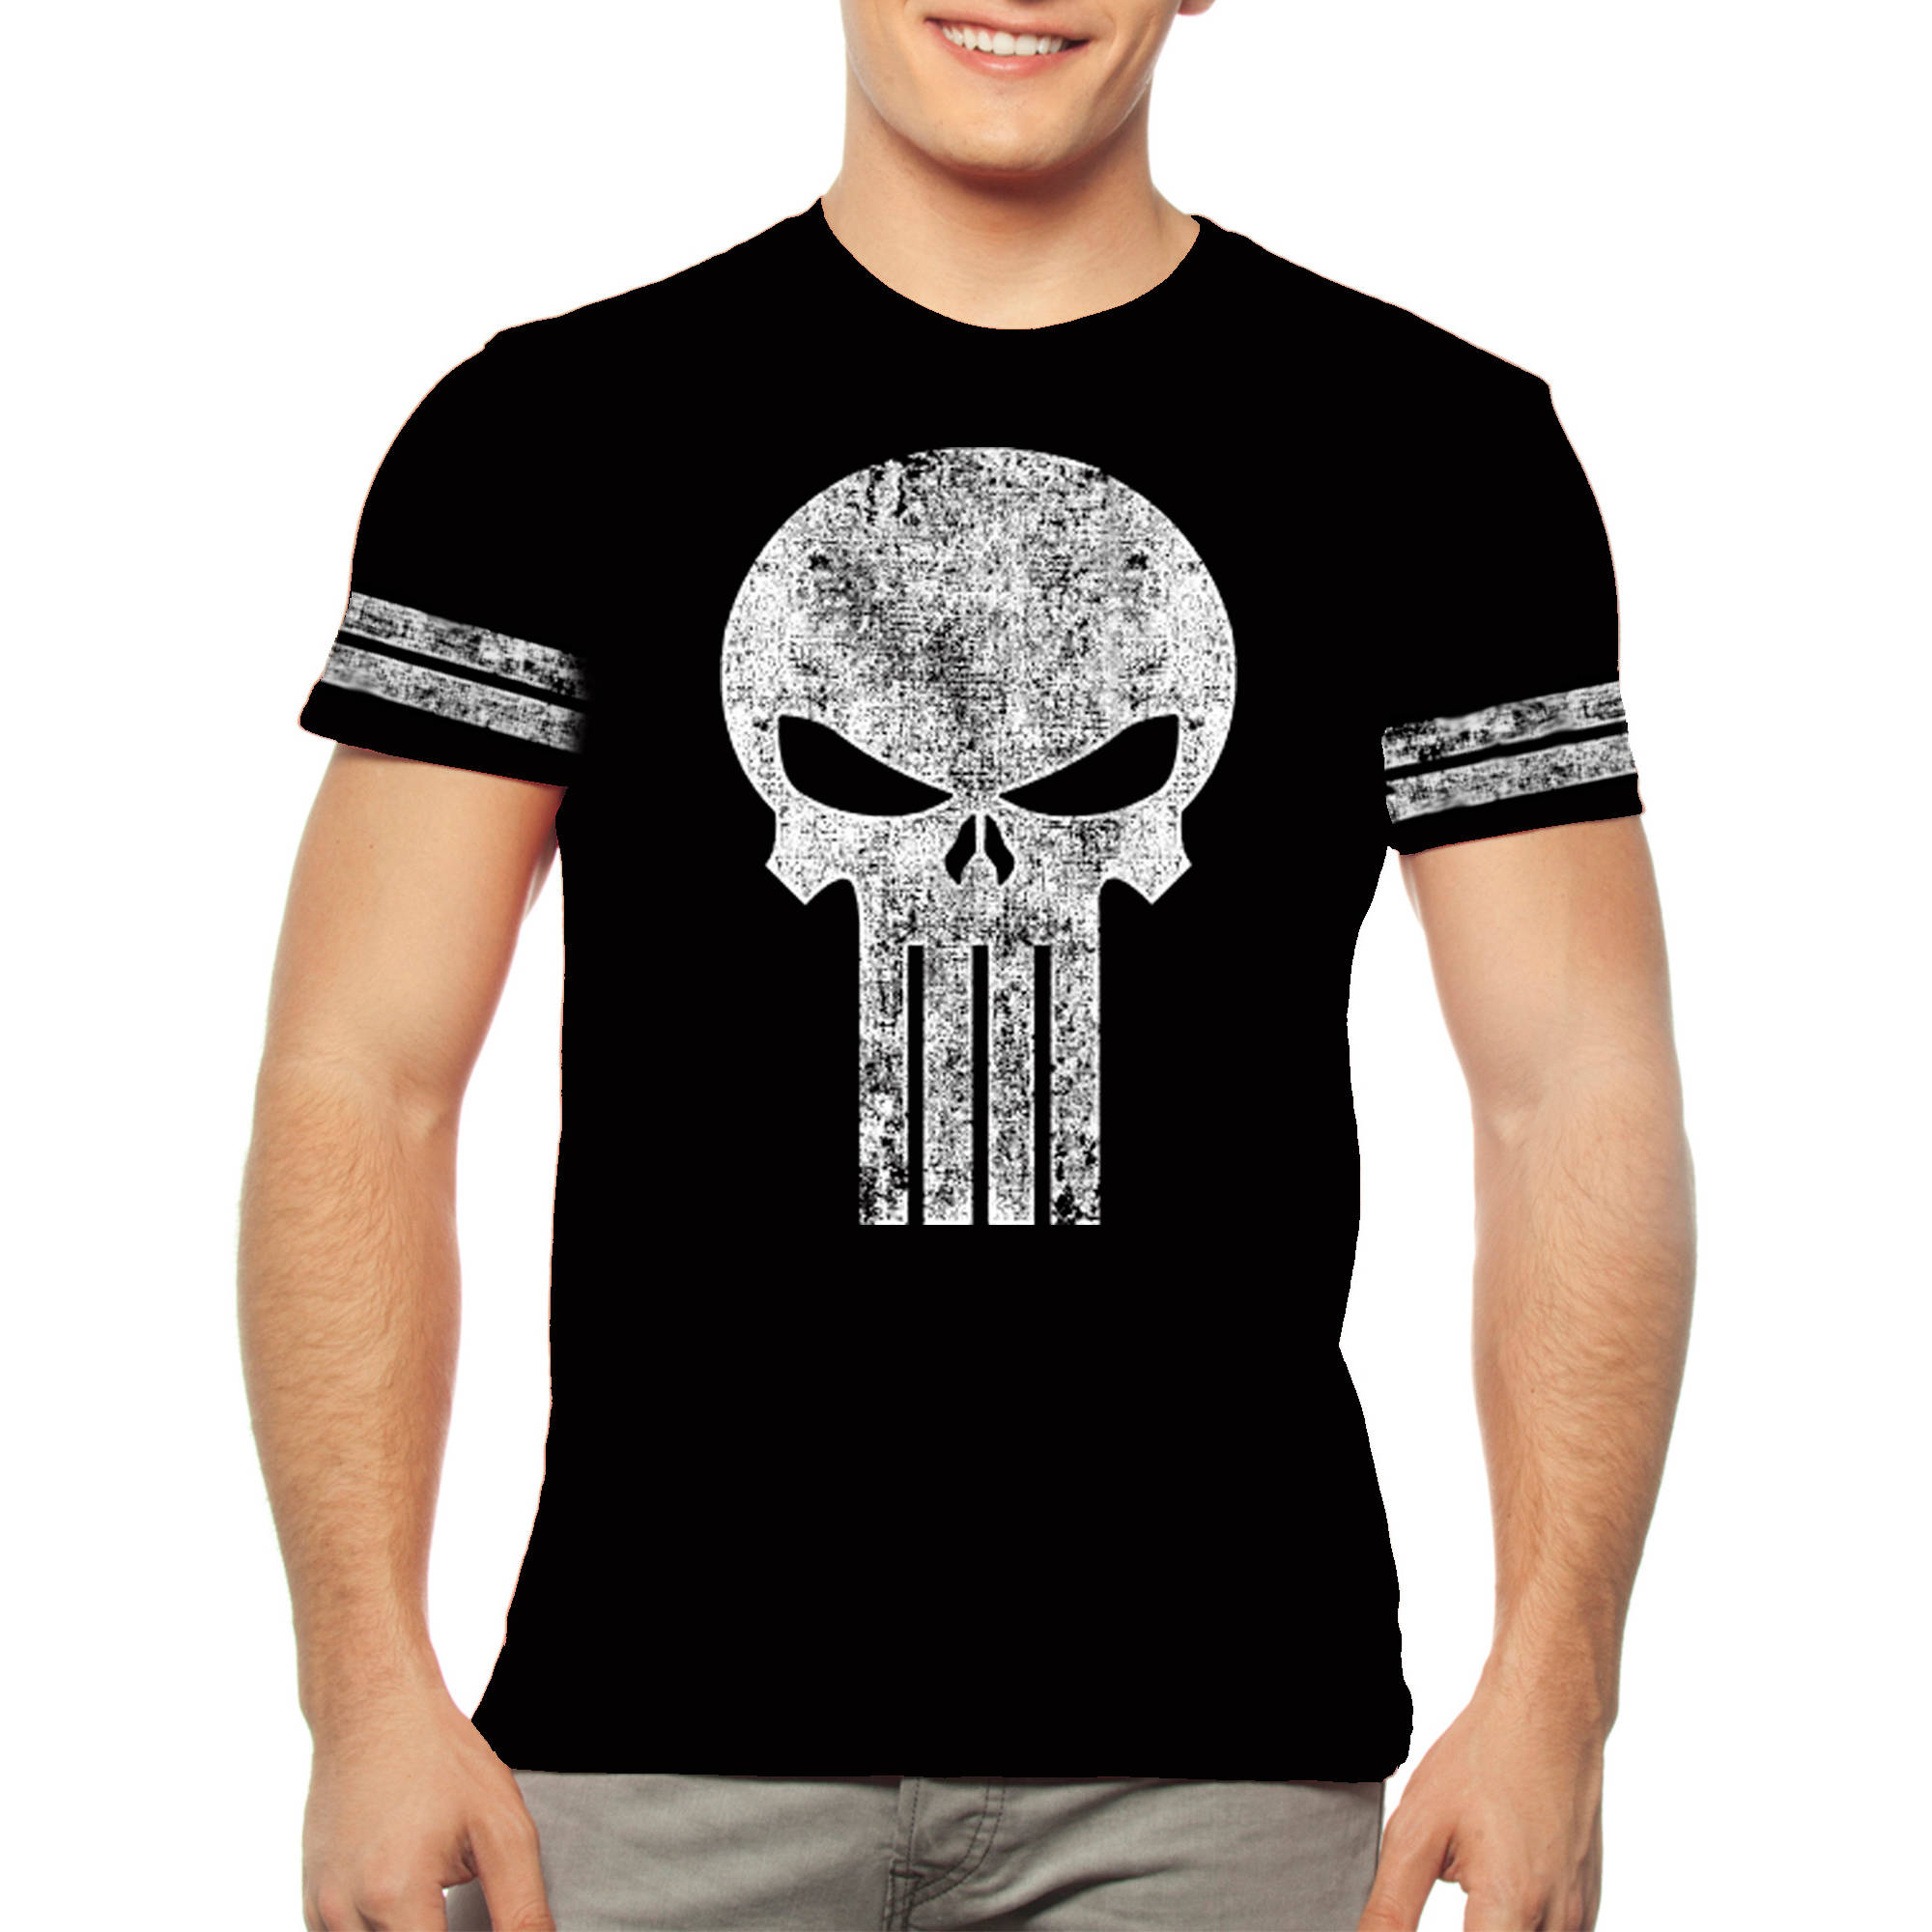 Punisher Men's Graphic Tee